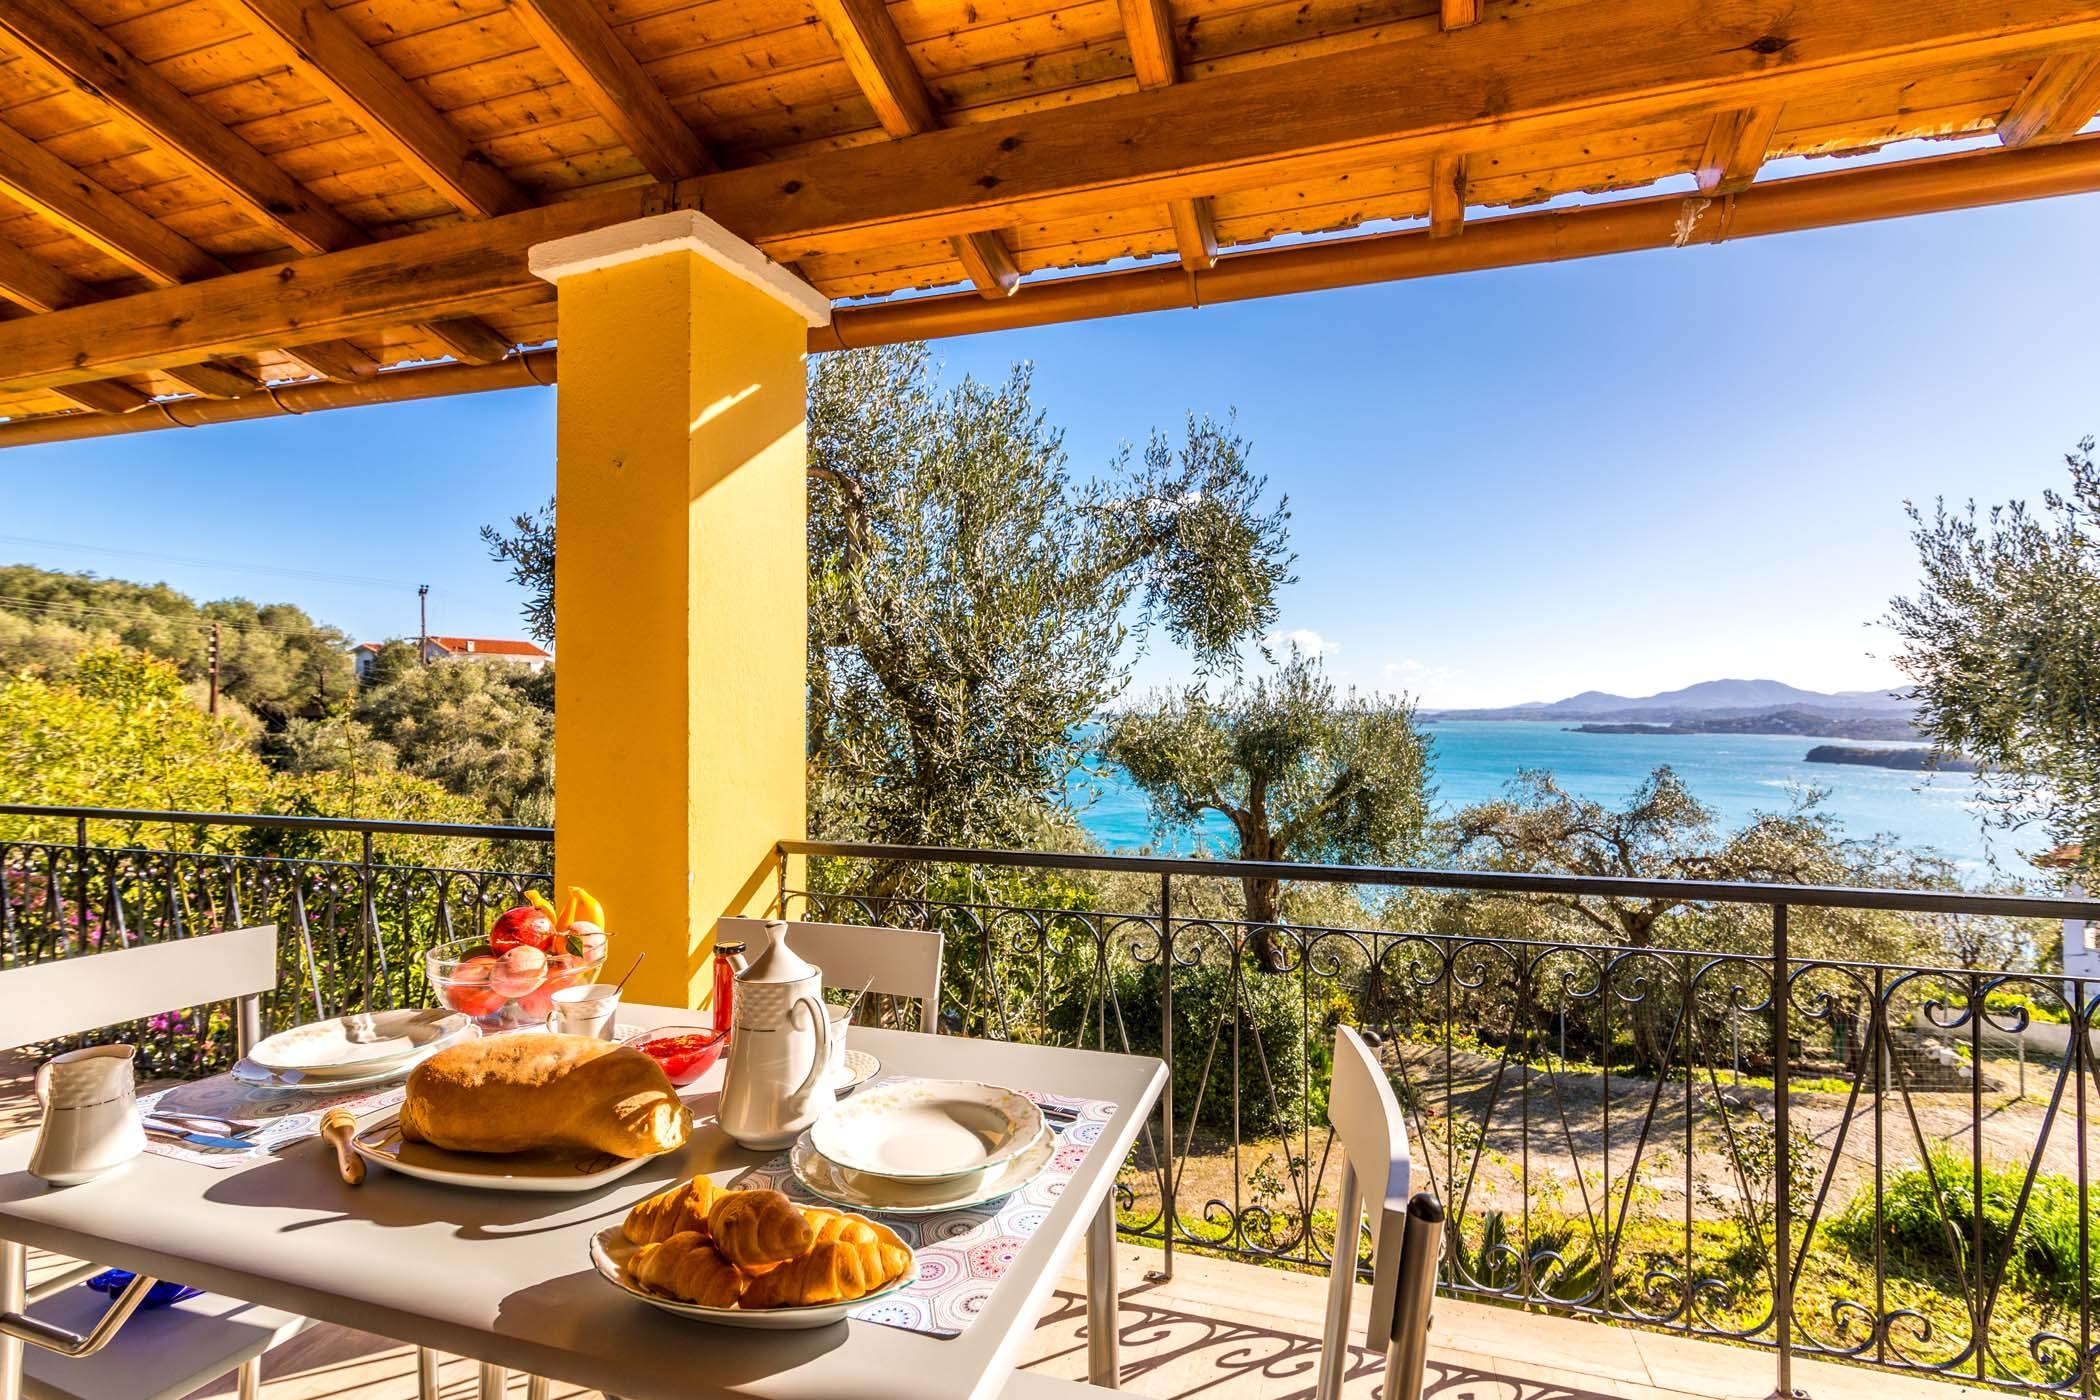 apartments for rent in ipsos - ipsos accommodation - ionian summer